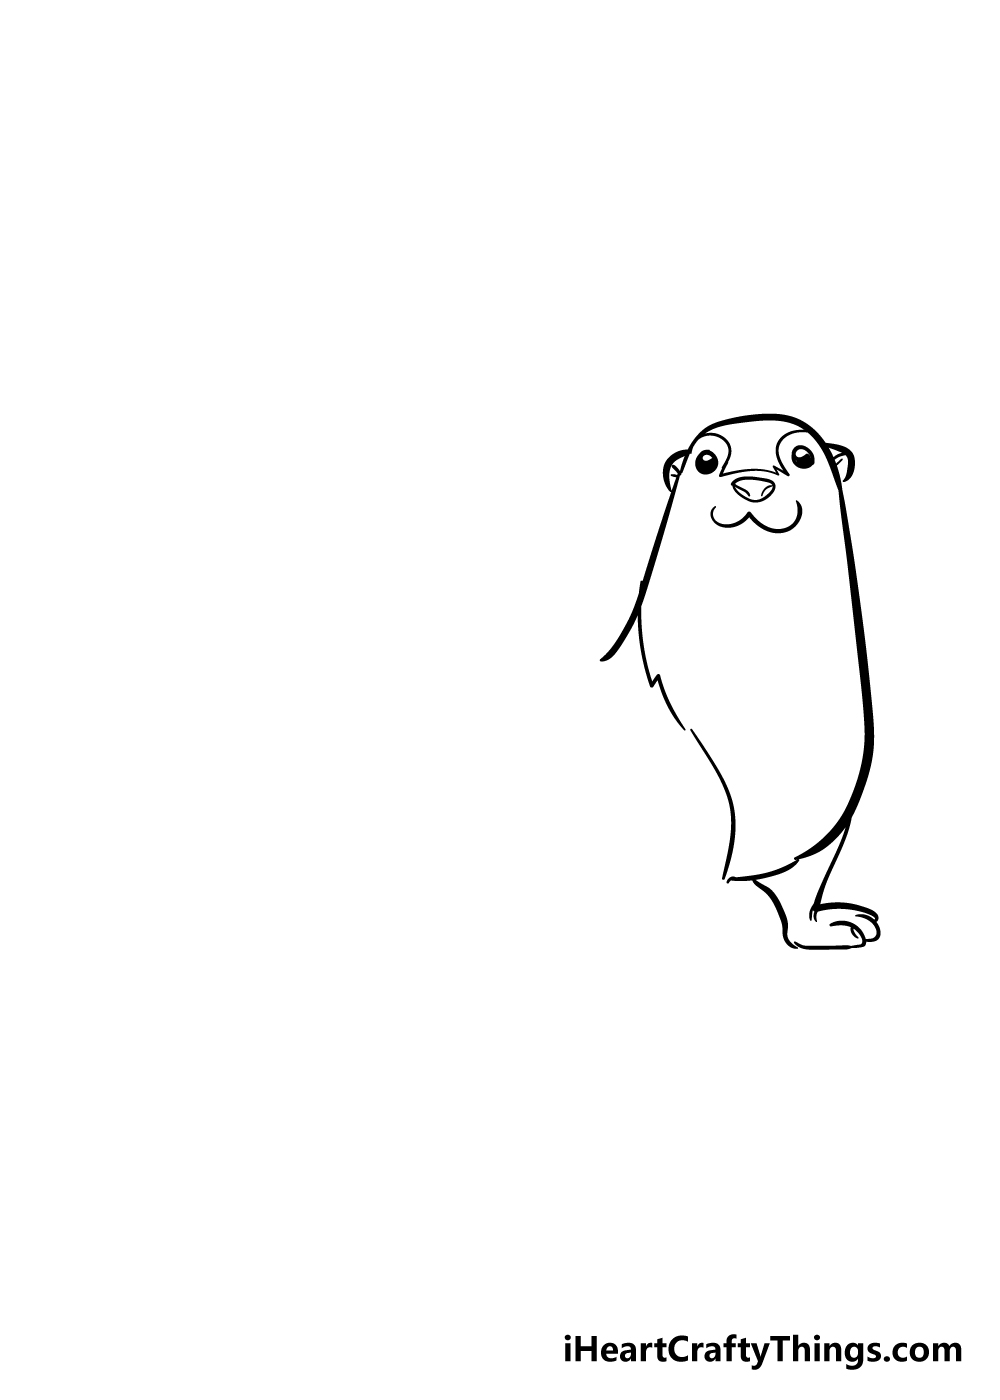 otter drawing step 2